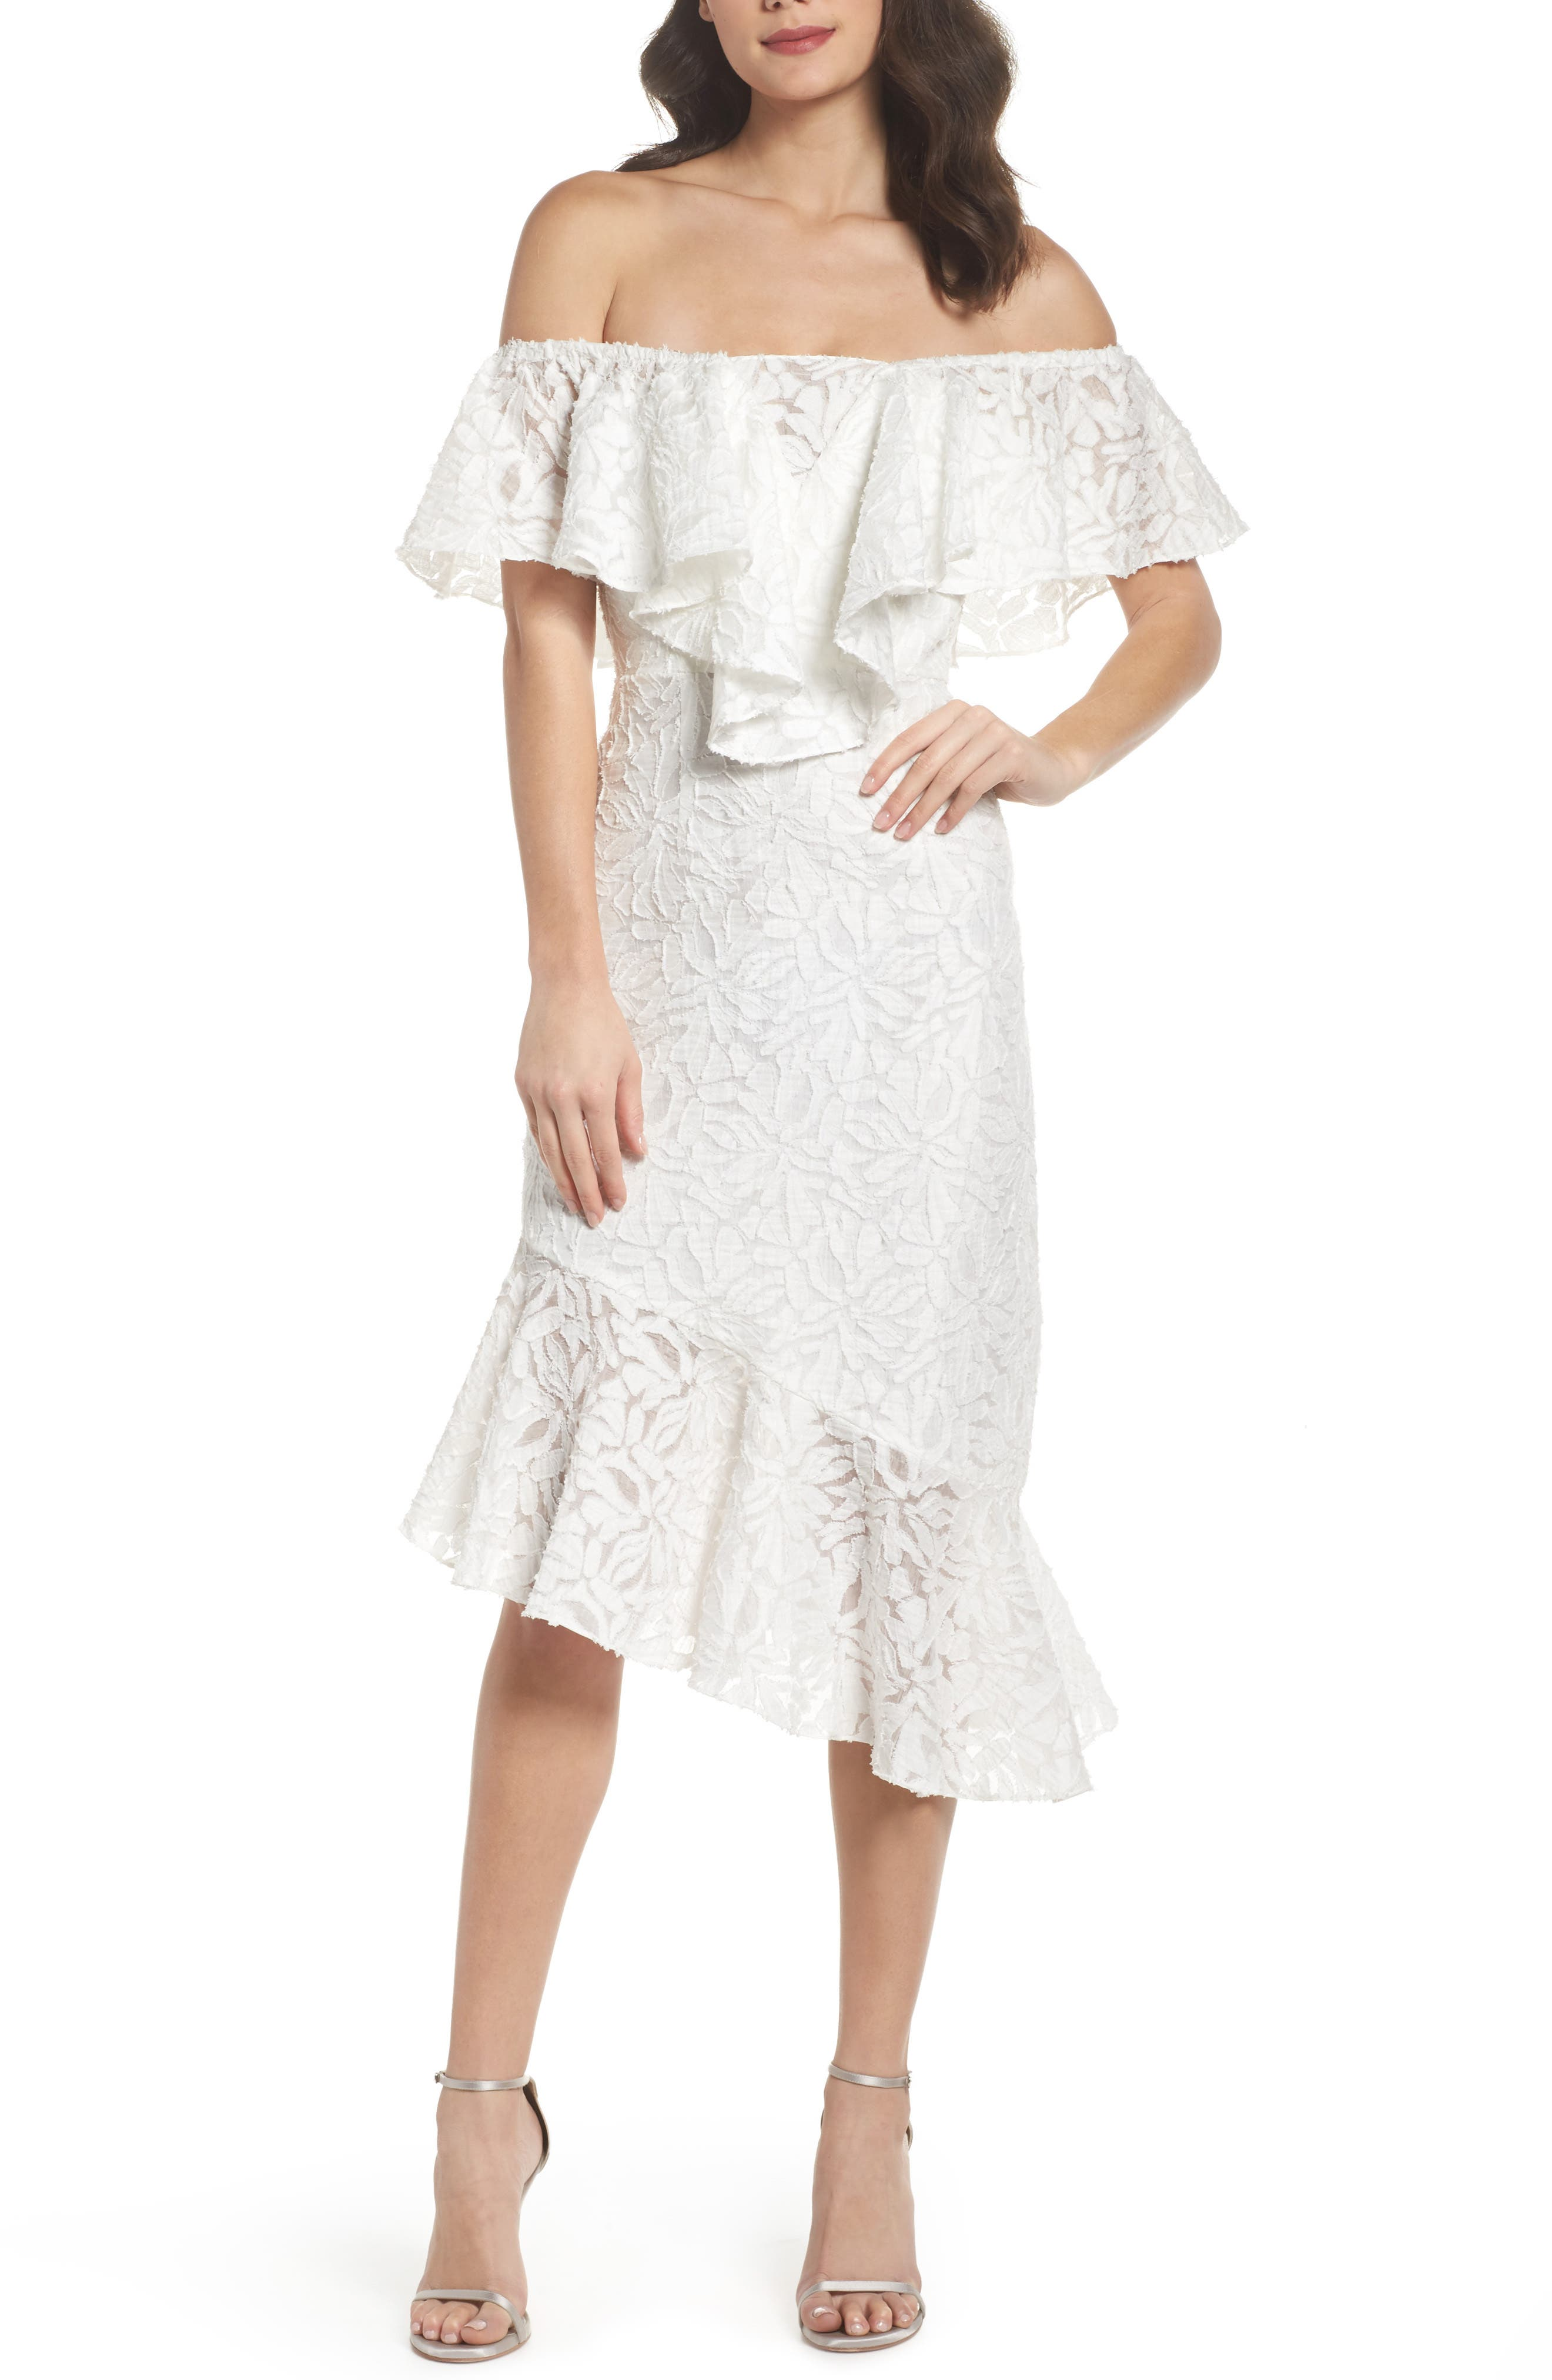 C/MEO More to Give Off the Shoulder Midi Dress,                             Main thumbnail 1, color,                             900